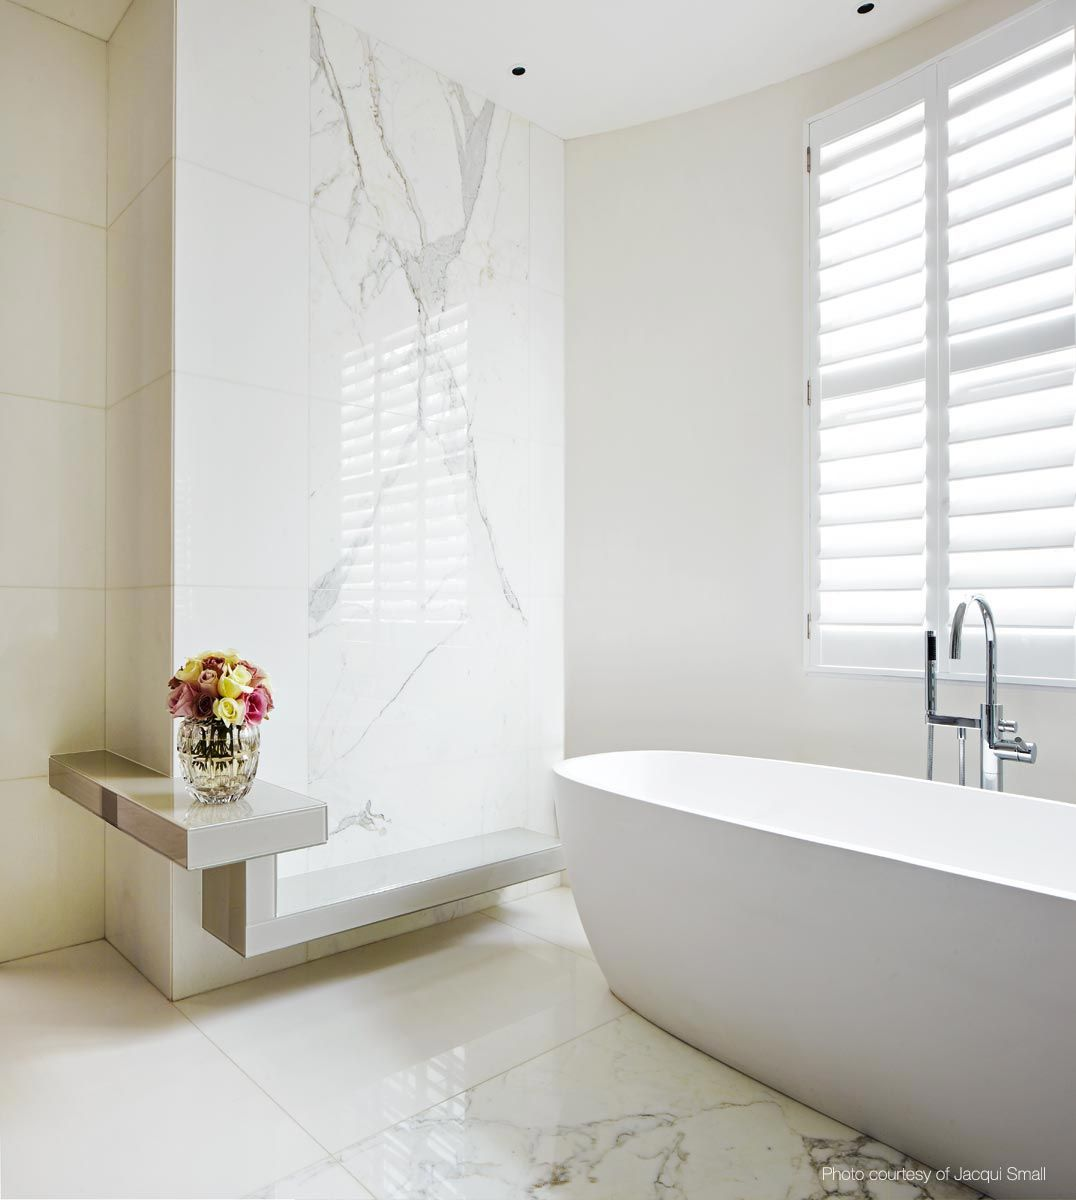 Bathroom Interior Design Ideas To Check Out 85 Pictures: Kelly Hoppen, The Family Home, London